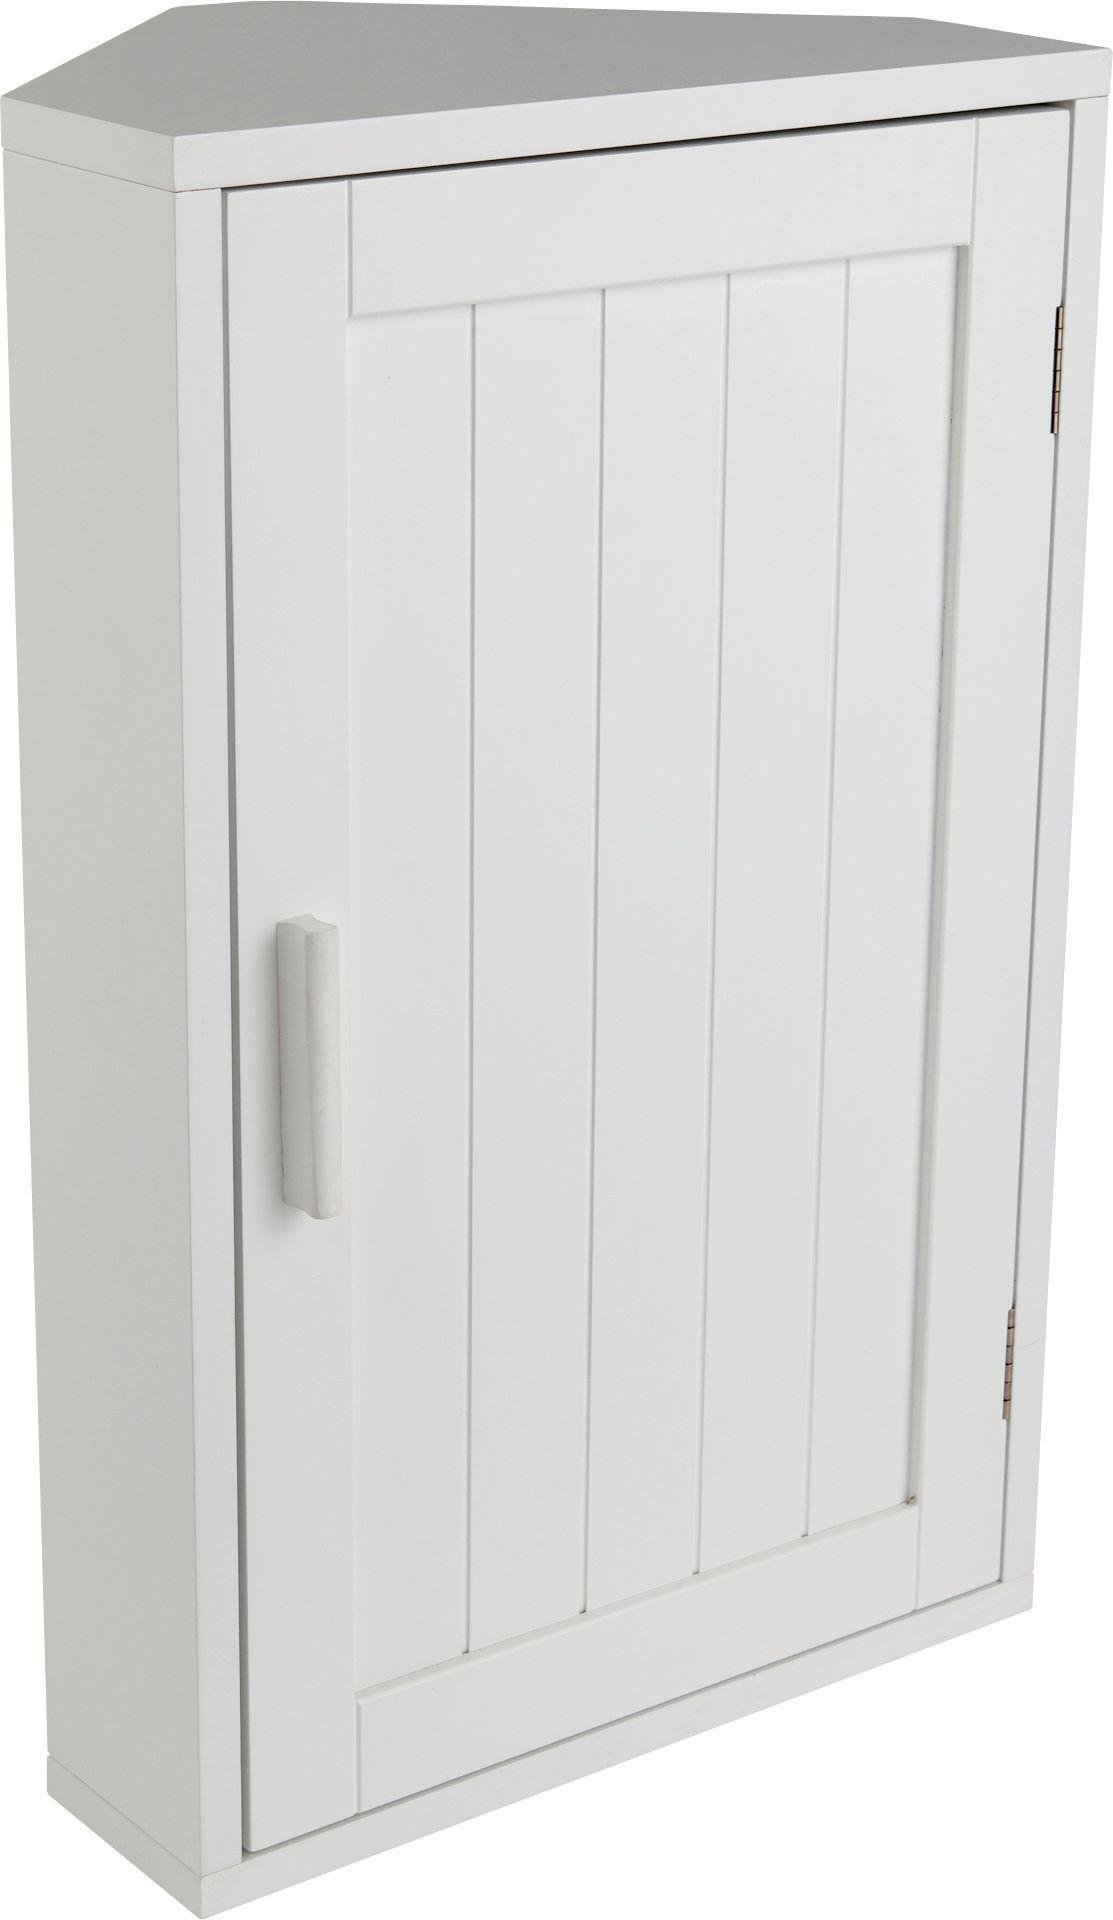 HOME Wooden Corner Bathroom Cabinet   White